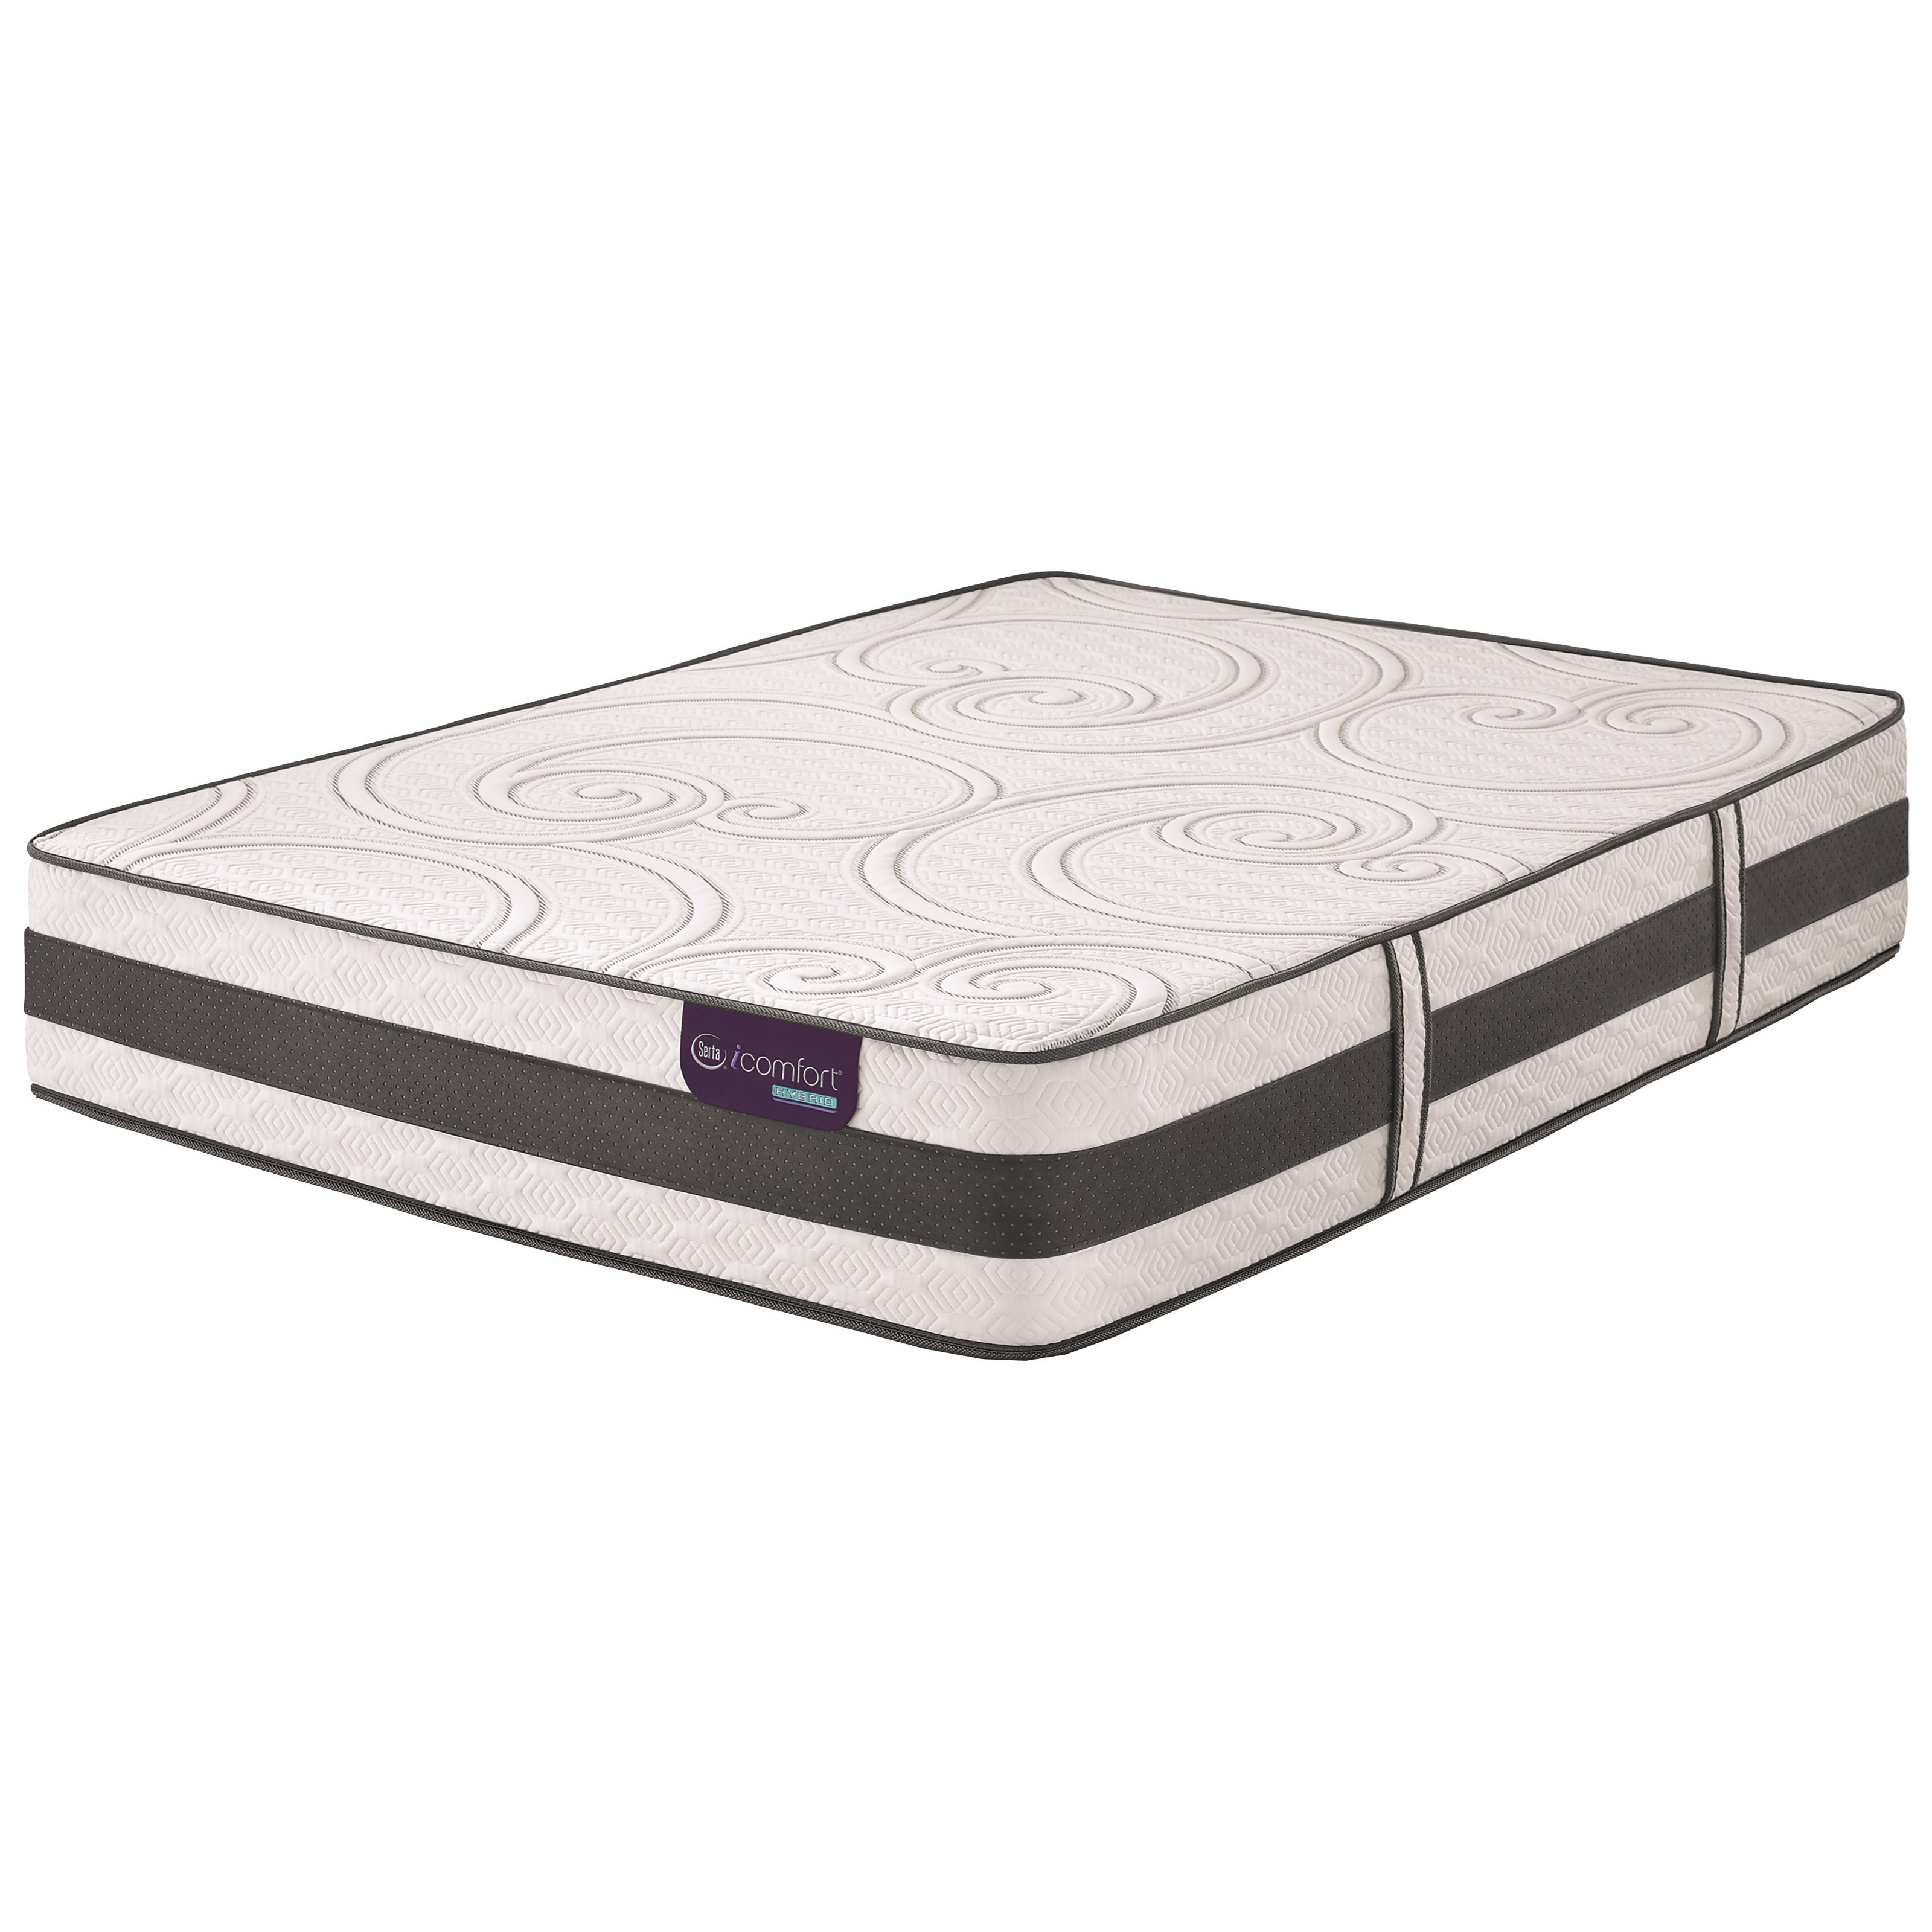 Serta iComfort Hybrid Discoverer King Firm Hybrid Smooth Top Mattress - Item Number: DiscovererFirm-K